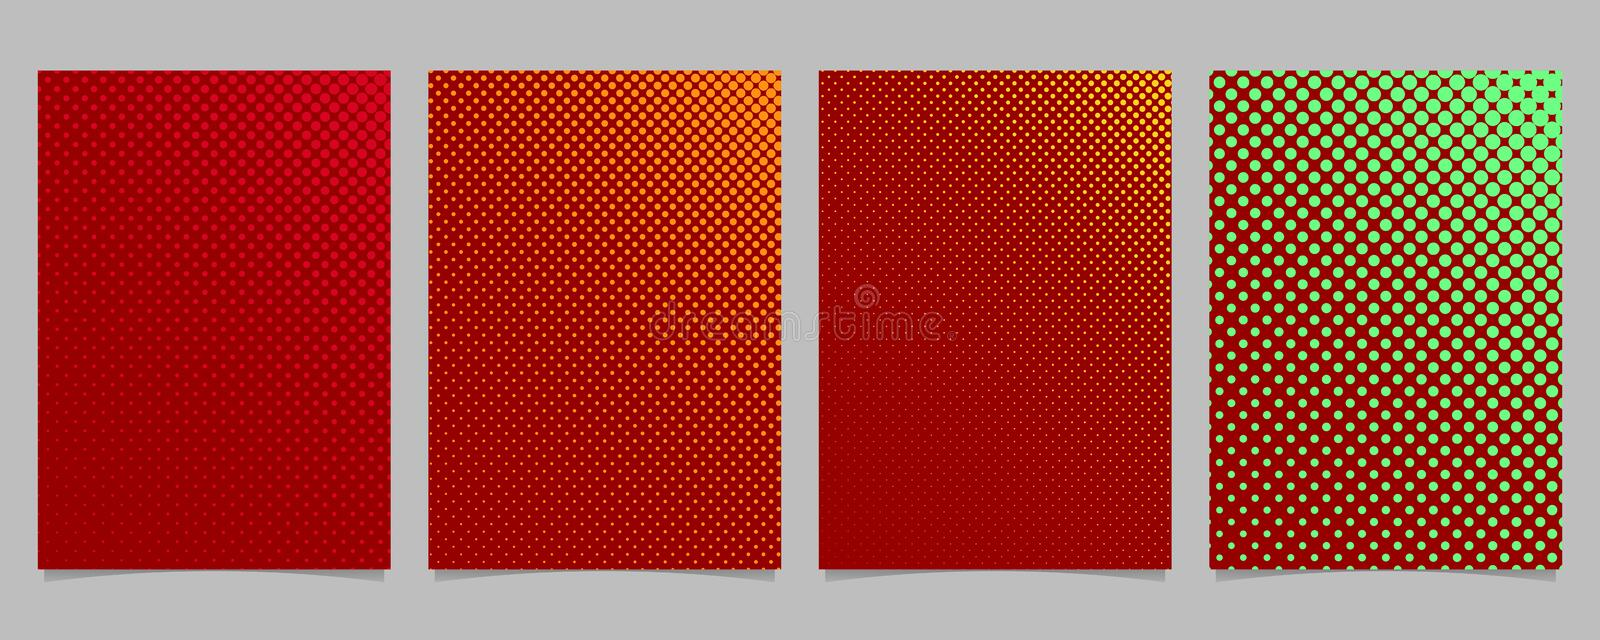 Abstract color halftone dot pattern cover template set - vector stationery background illustration with circles. Abstract color halftone dot pattern cover stock illustration